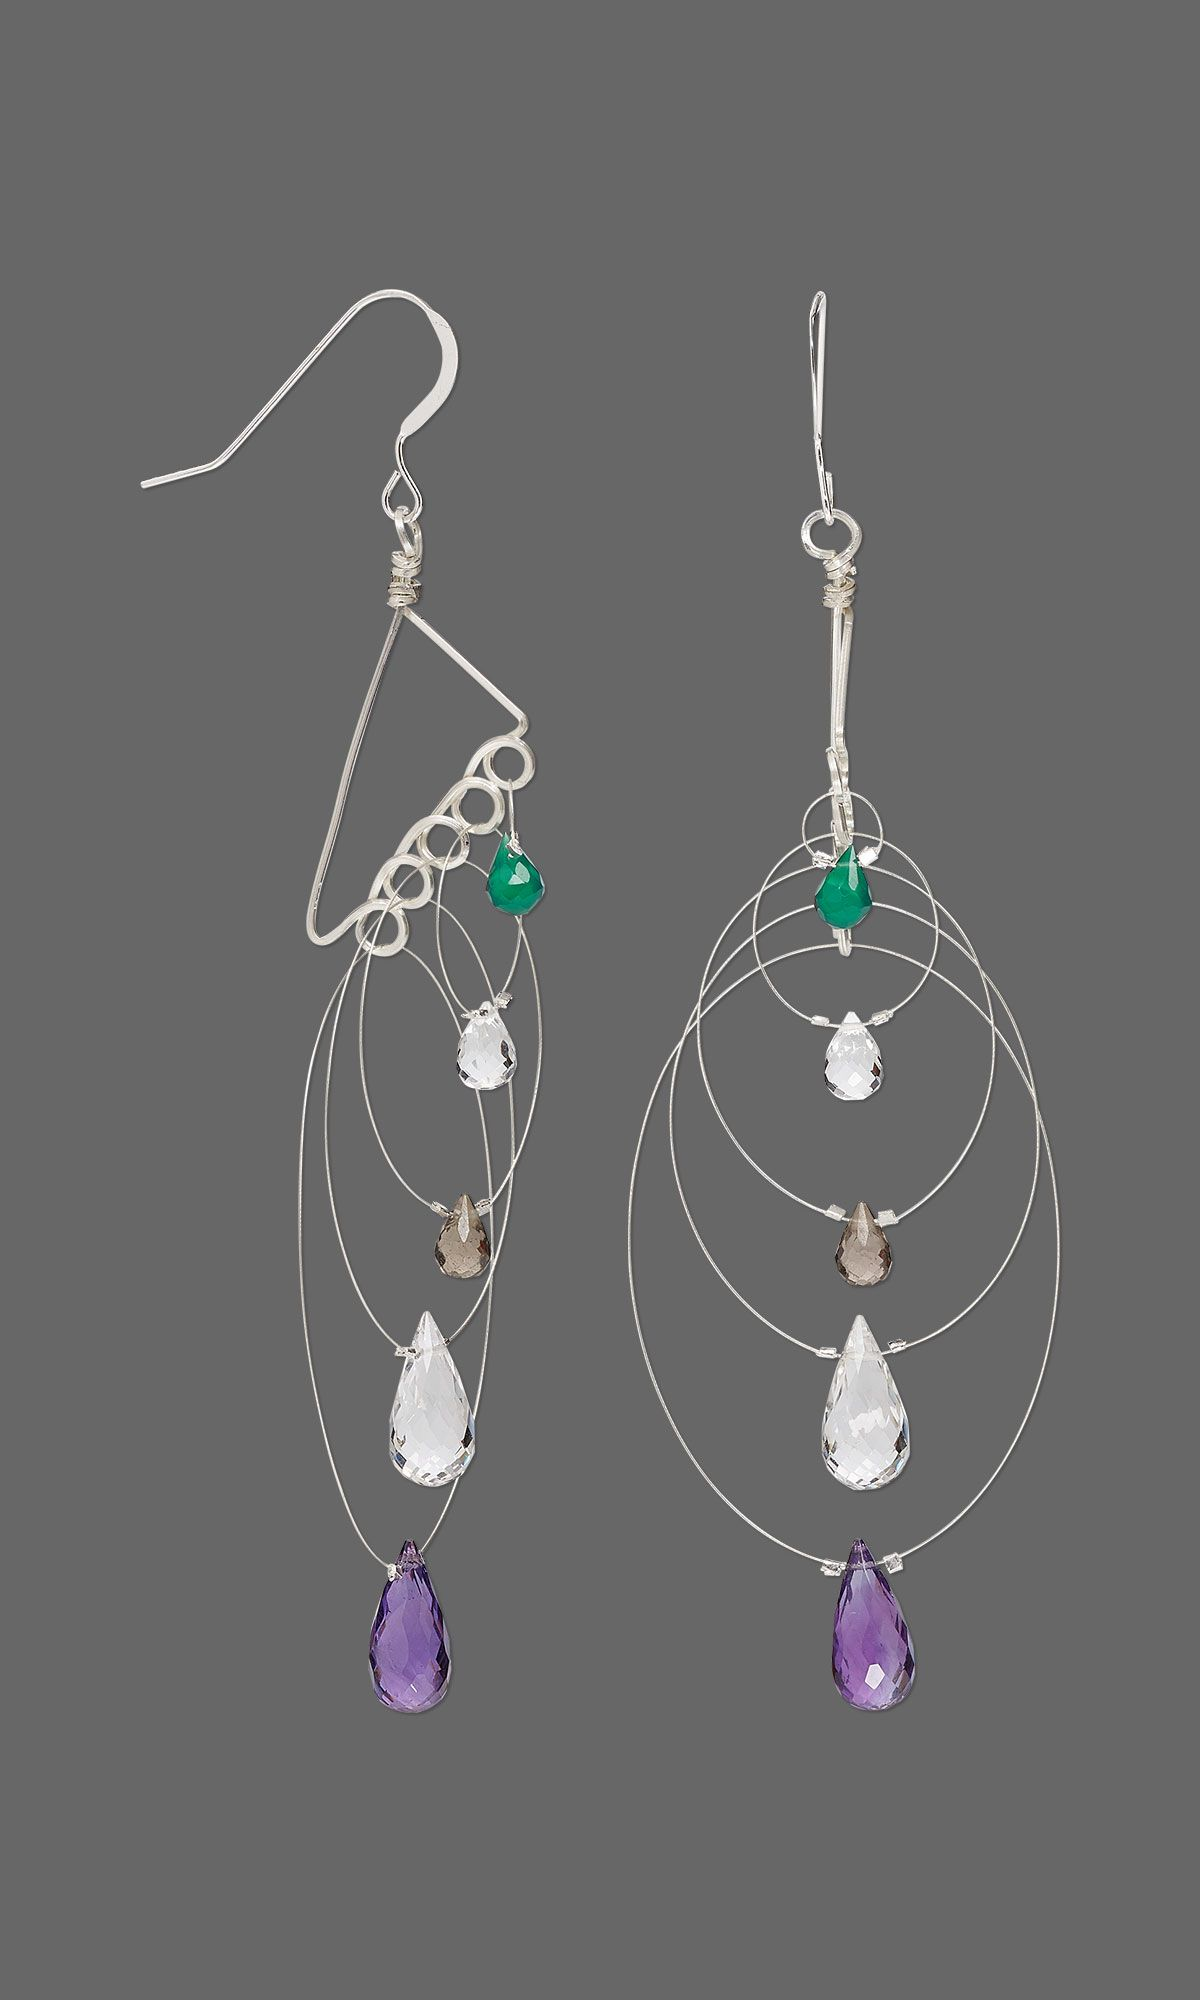 Jewelry Design - Earrings with Gemstone Beads, Accu-Flex® Beading ...